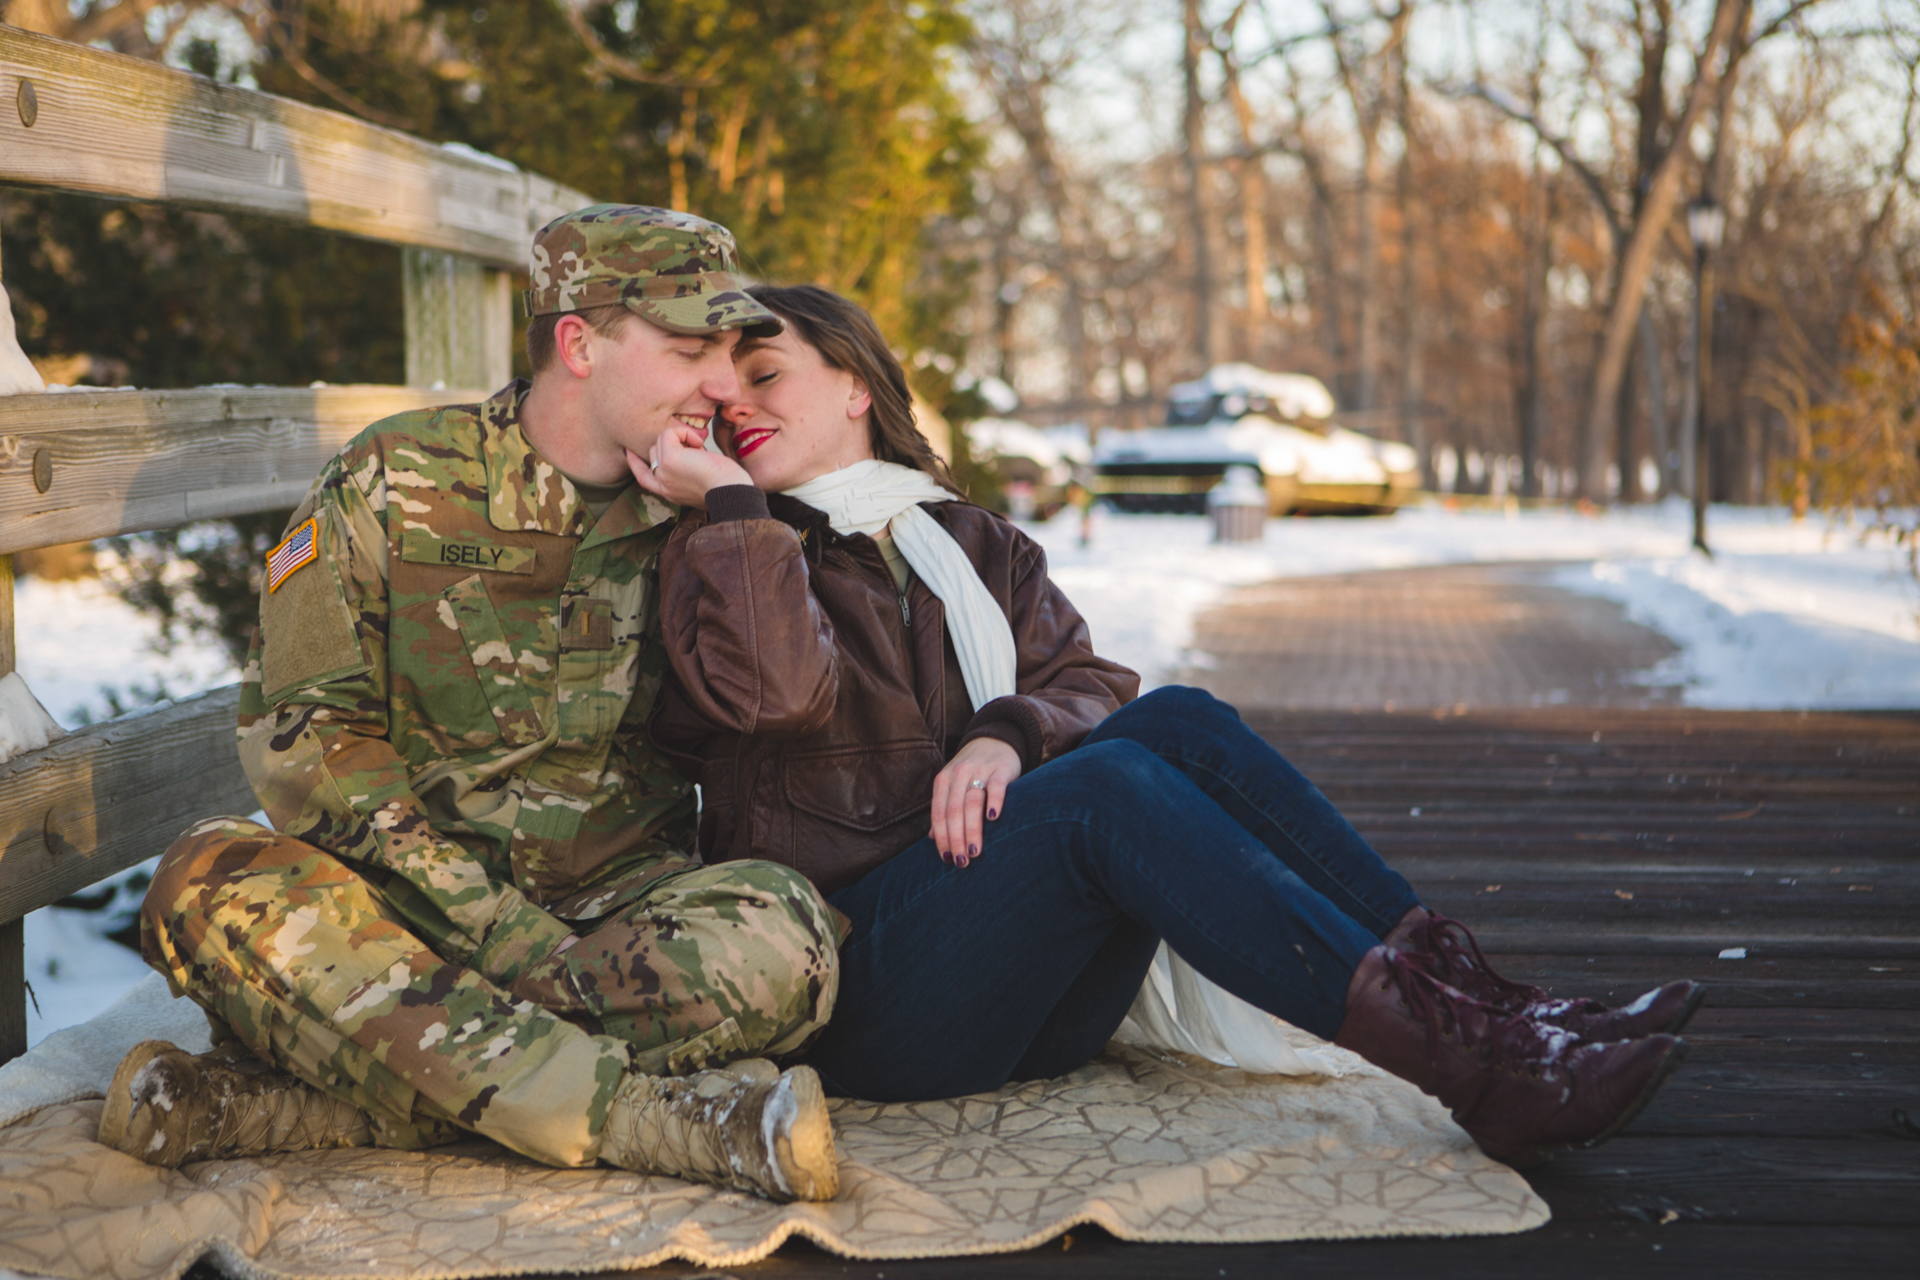 military engagement pictures cantigny wheaton illinois army national guard winter christmas snow batavia riverwalk riverfront-35.jpg